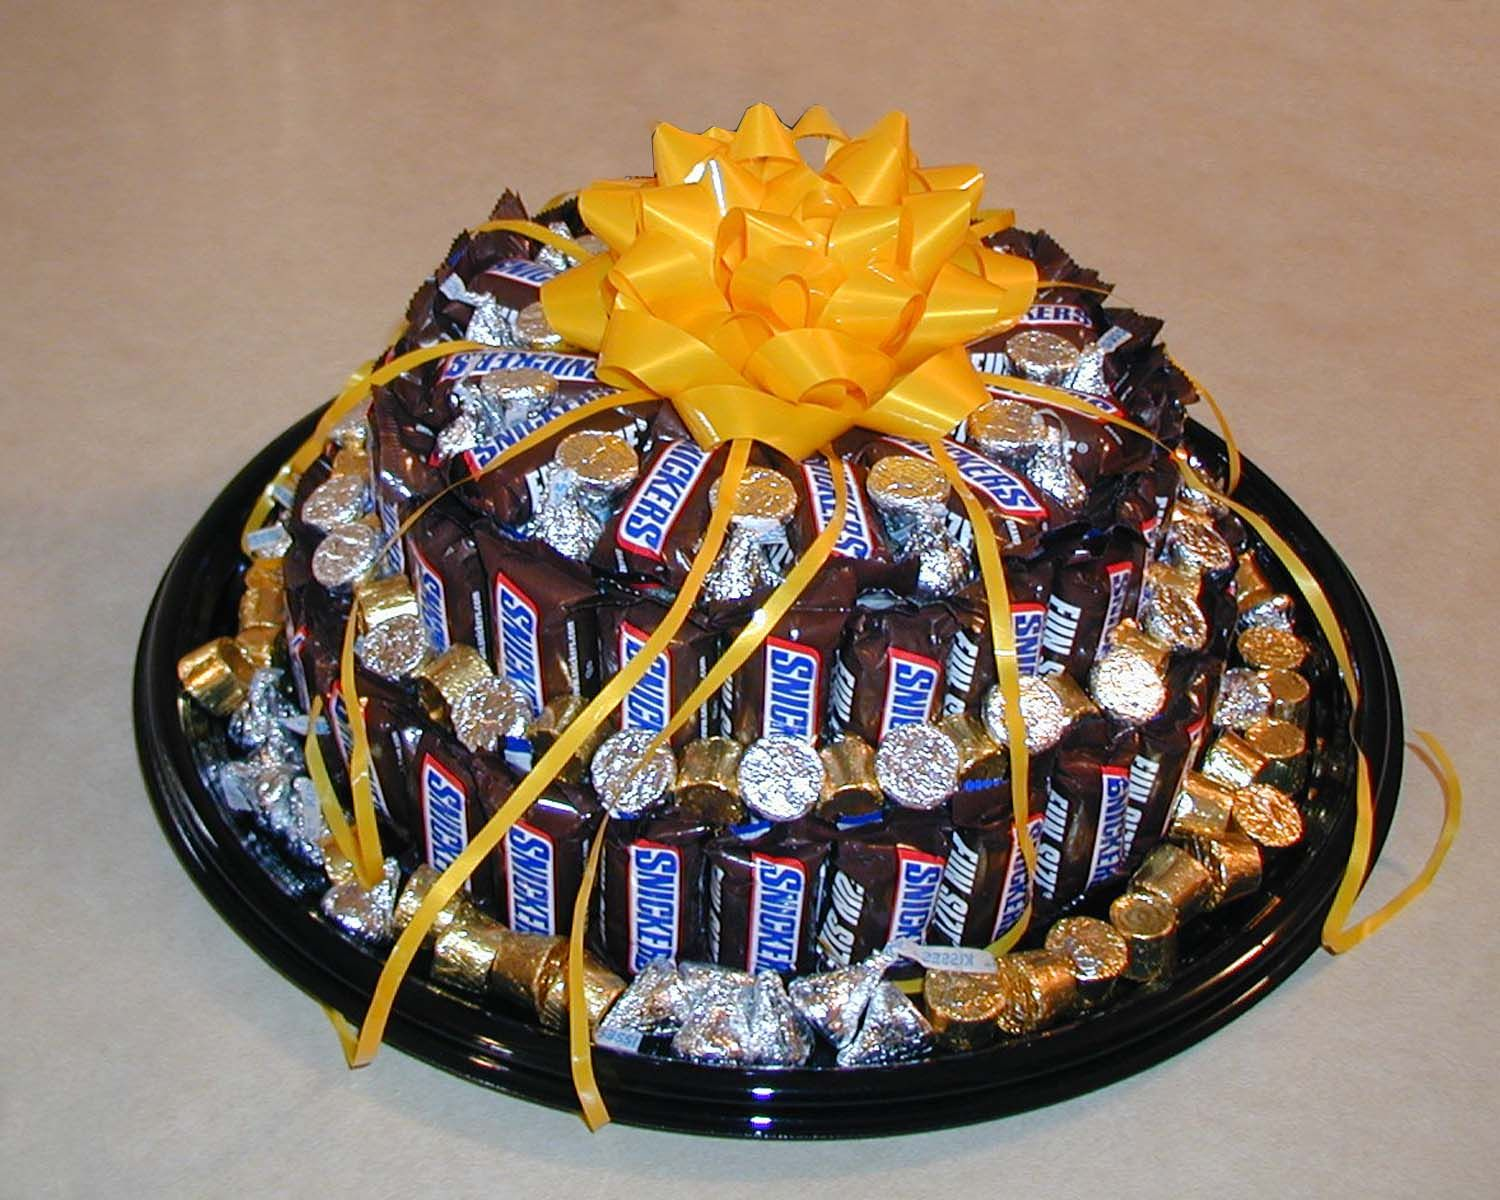 Pin By Karen Camic On Treasures I Ve Made Candy Bar Cake Gift Arrangements